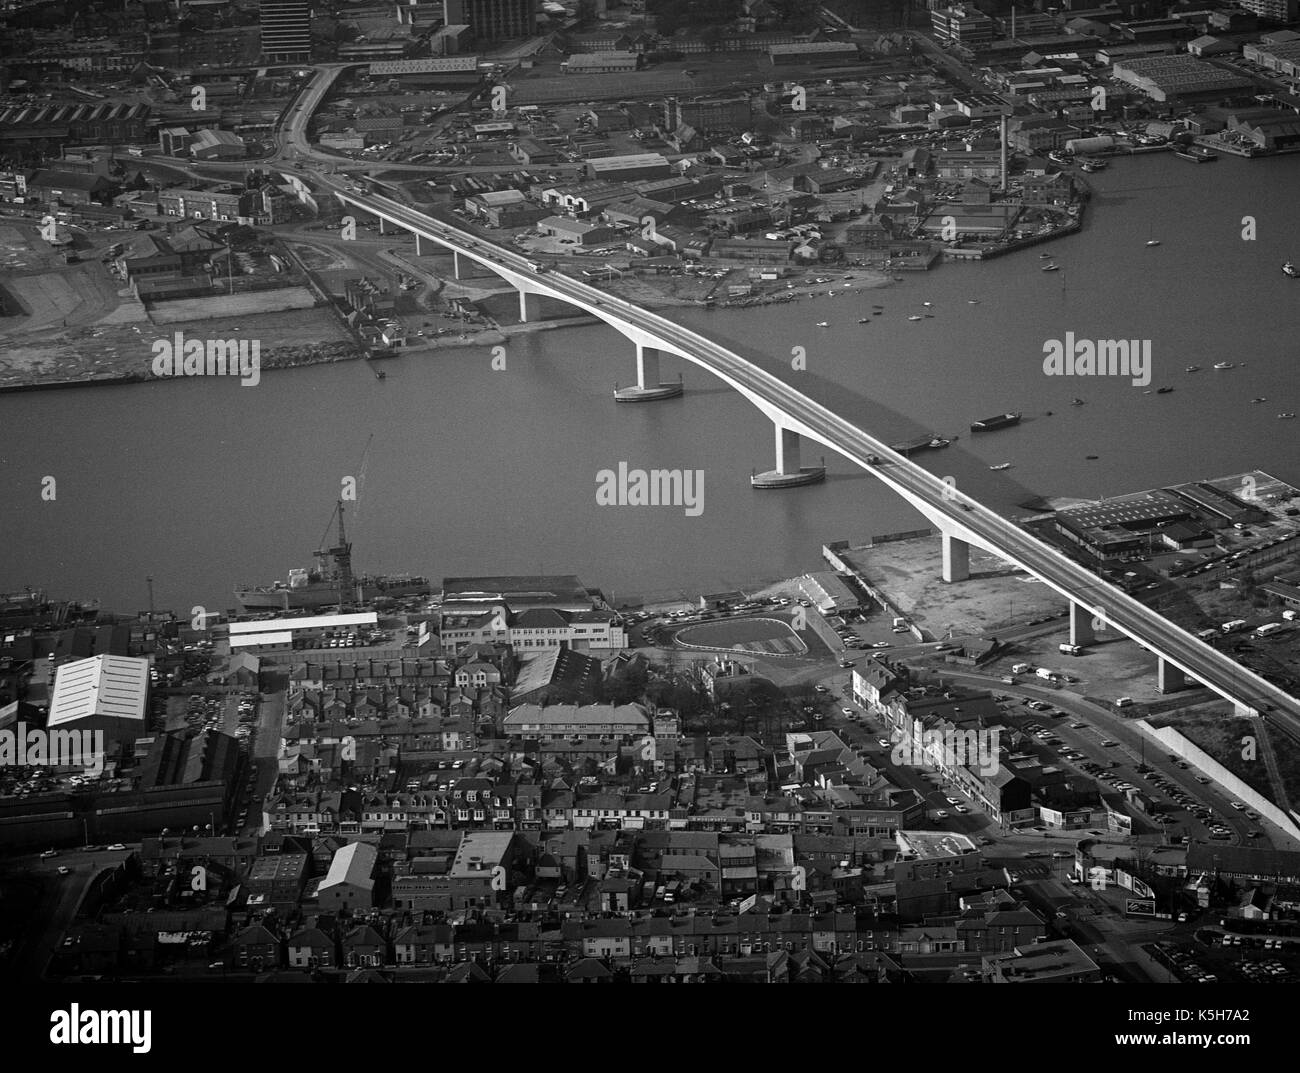 Aerial view of Itchen Bridge, Southampton, Hampshire, England, UK with the Woolston area of Southampton in the foreground. - Stock Image